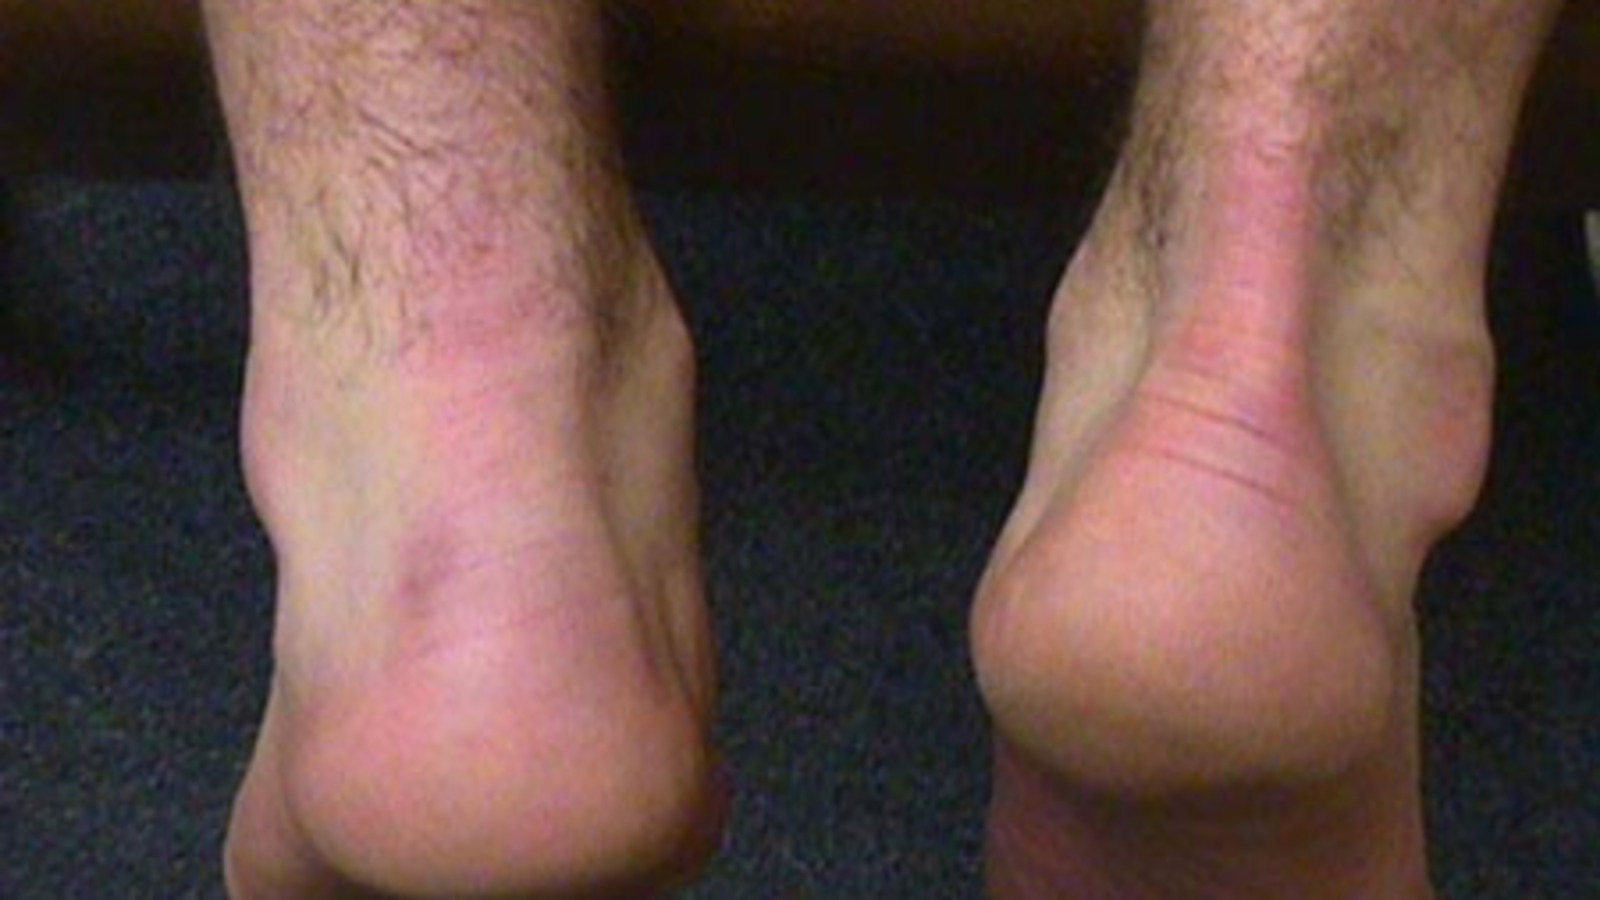 Posterior View of Ruptured Achilles Tendon